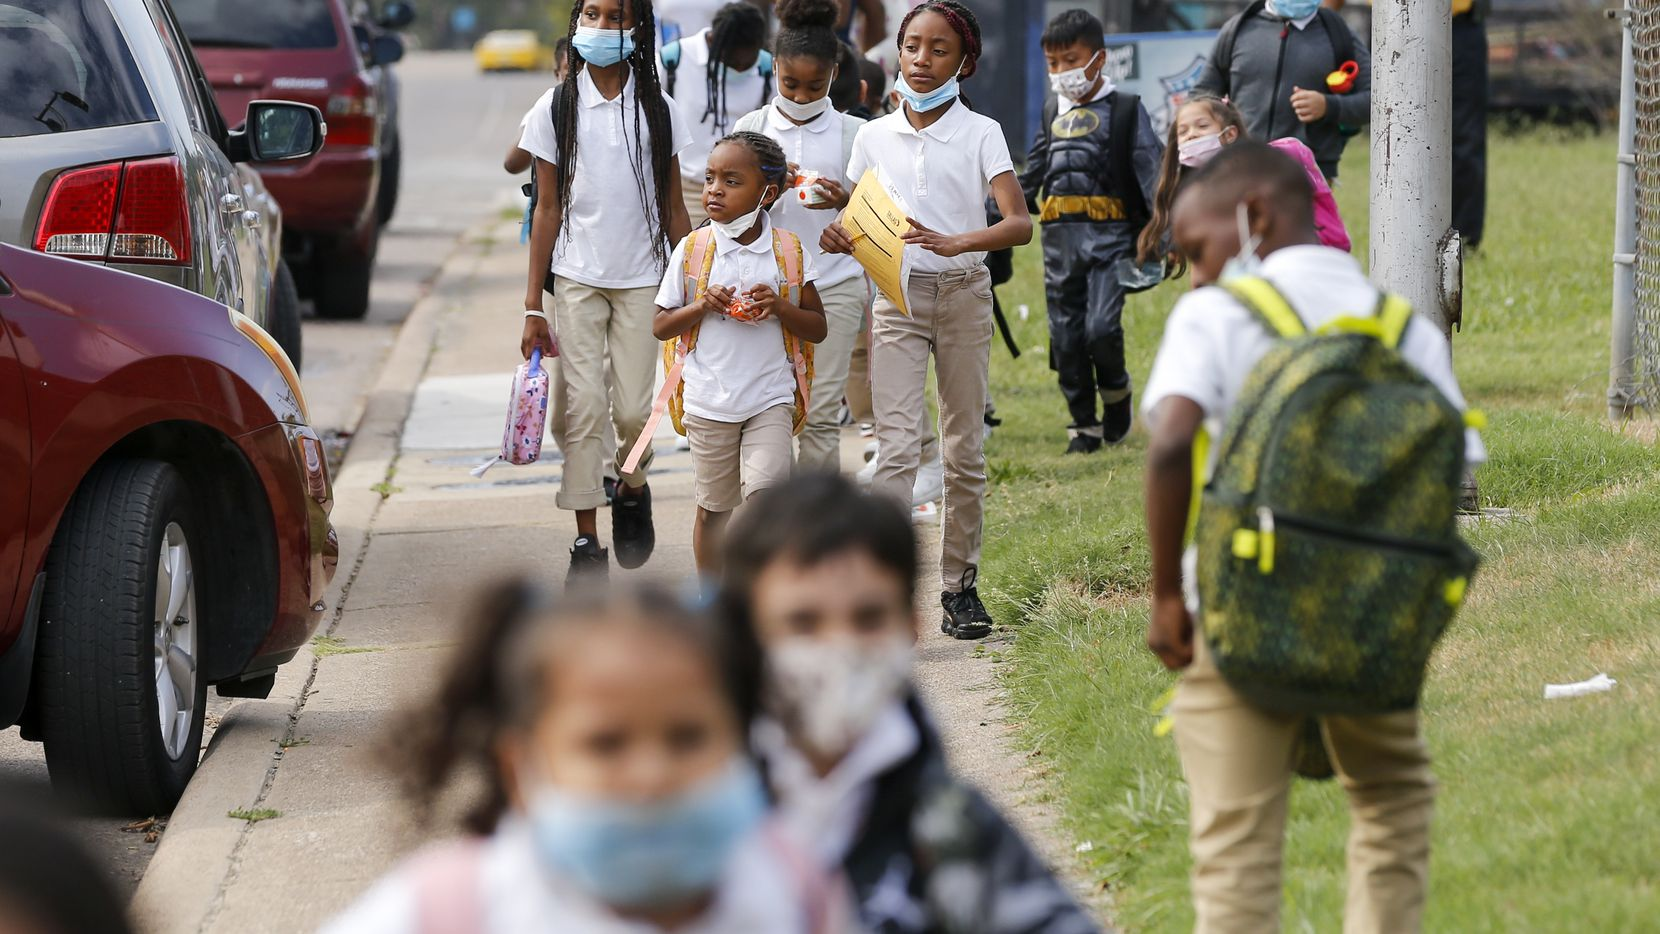 Children walk along a sidewalk after school at Paul L. Dunbar Learning Center in Dallas on Wednesday, Sept. 8, 2021. Dallas ISD is one of the districts that has issued a mask mandate.